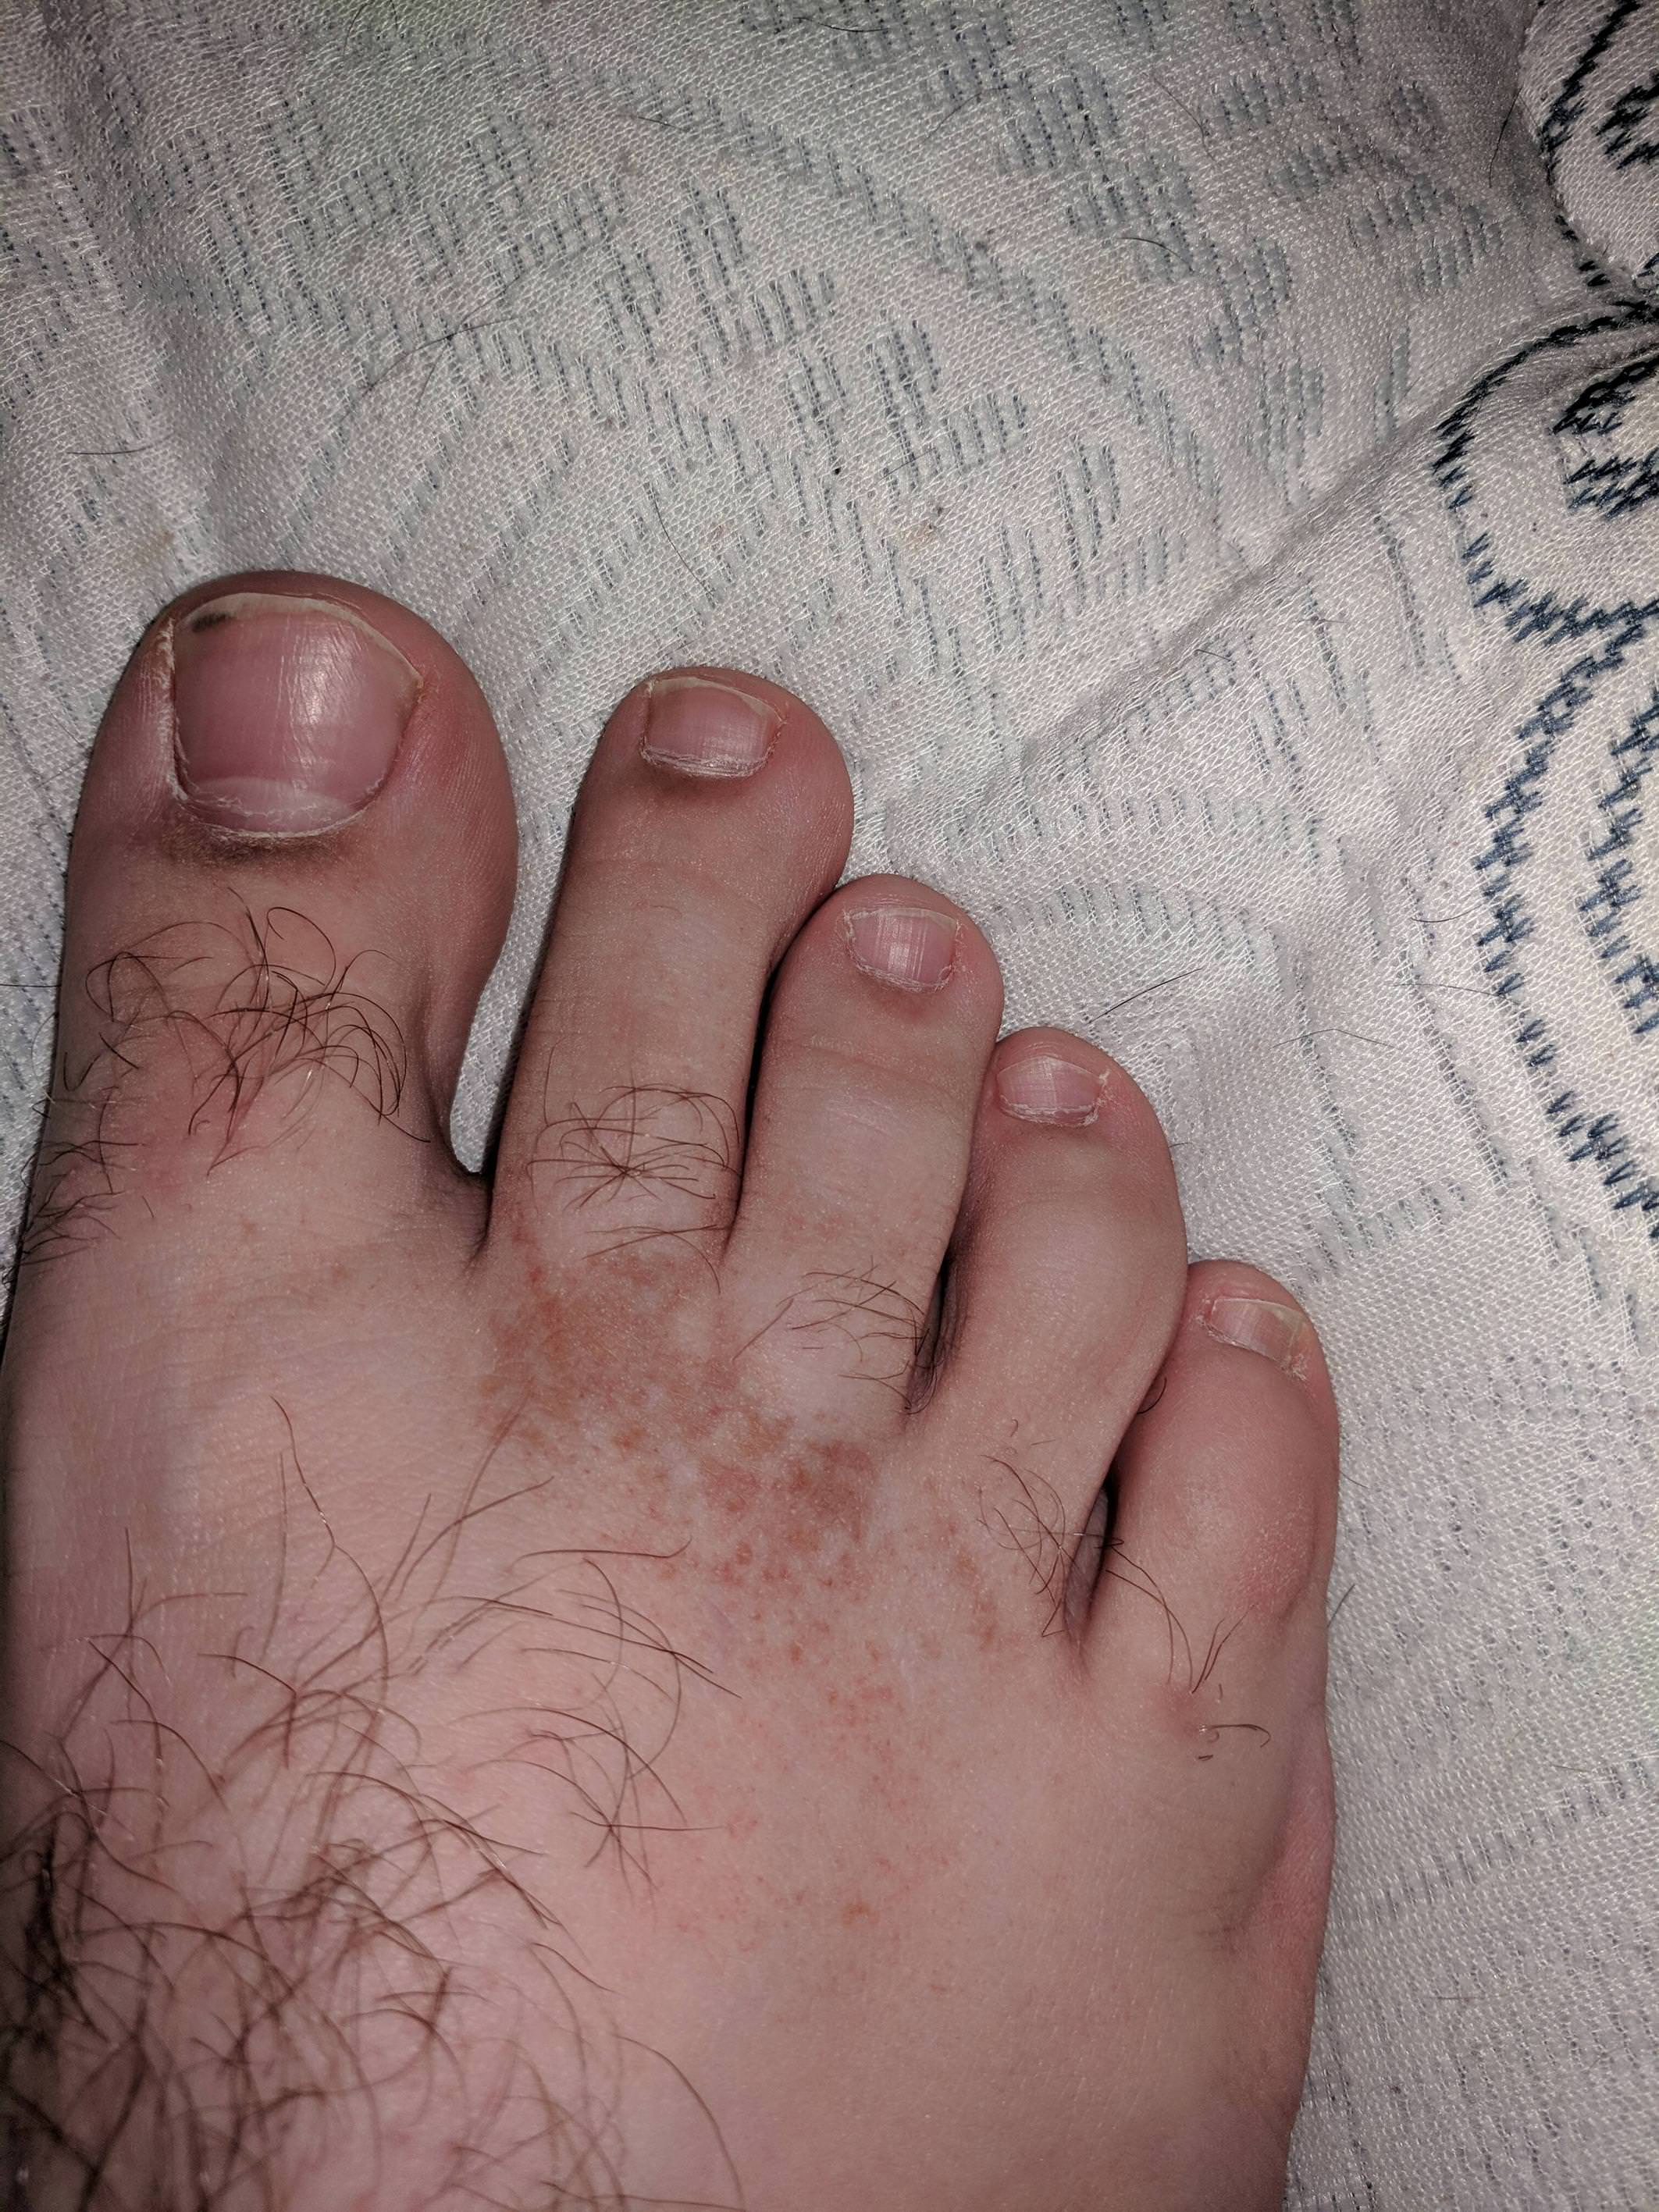 wart on foot itches)